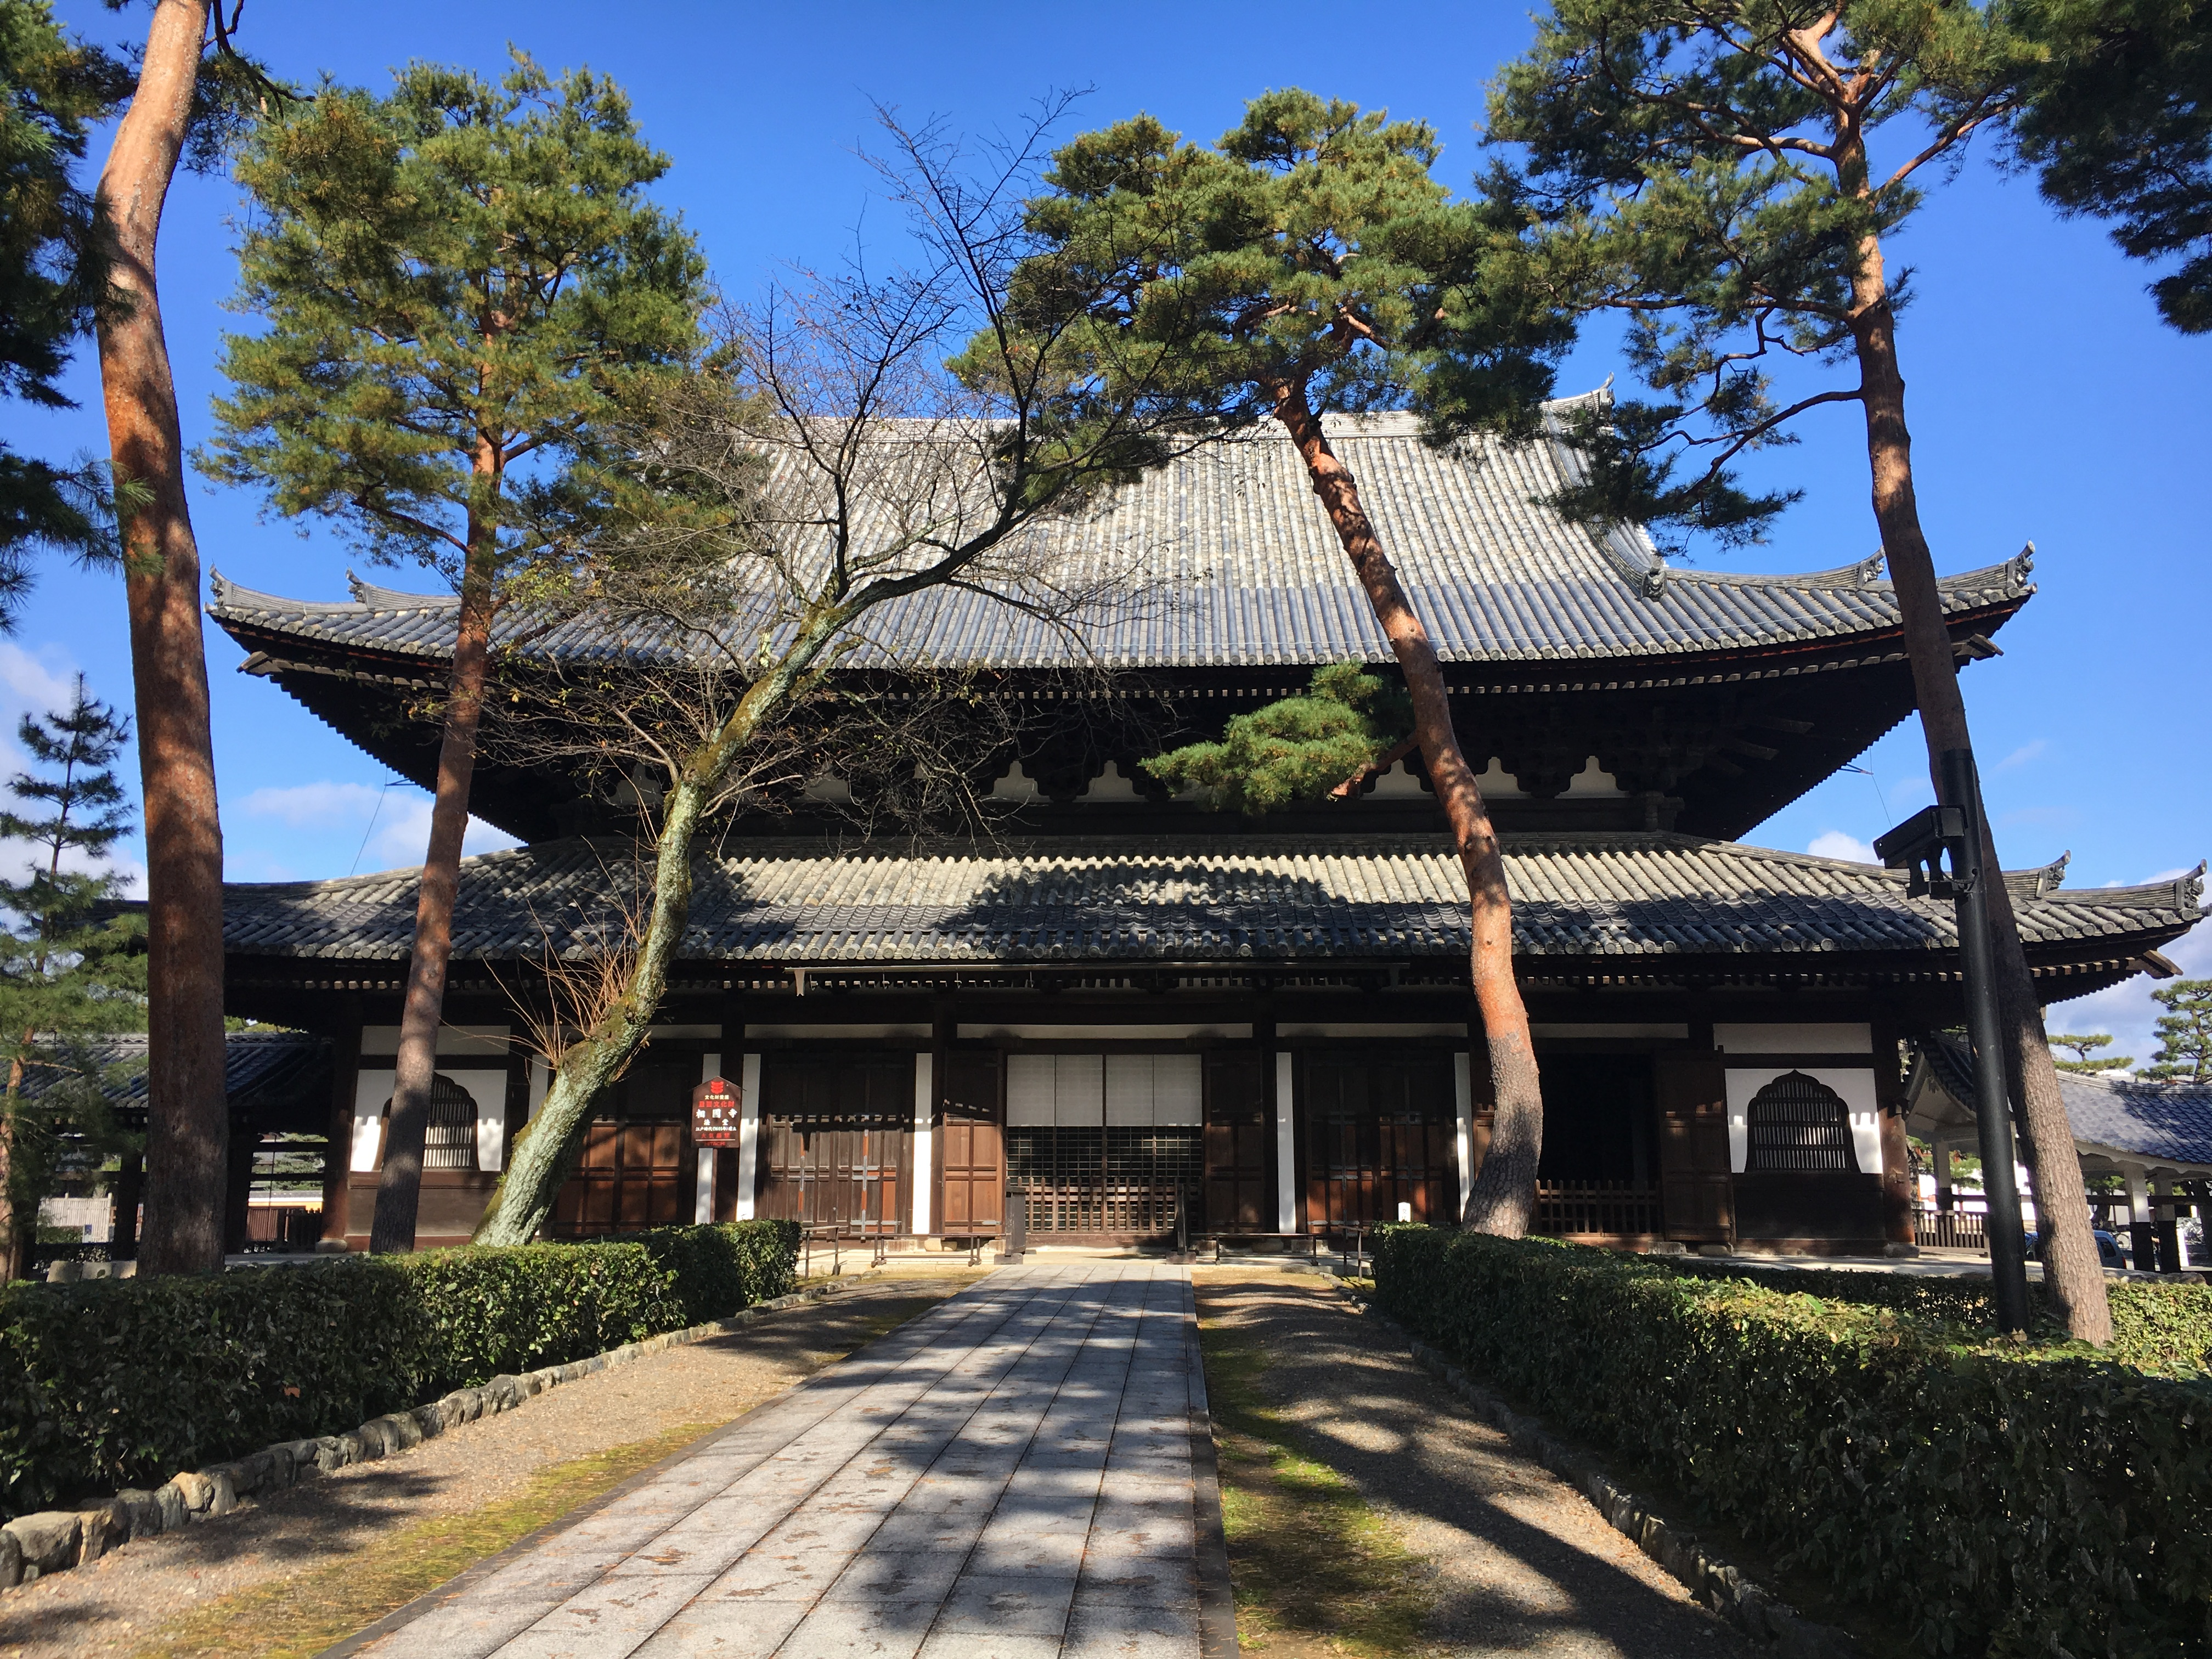 Shokoku-ji with pine trees